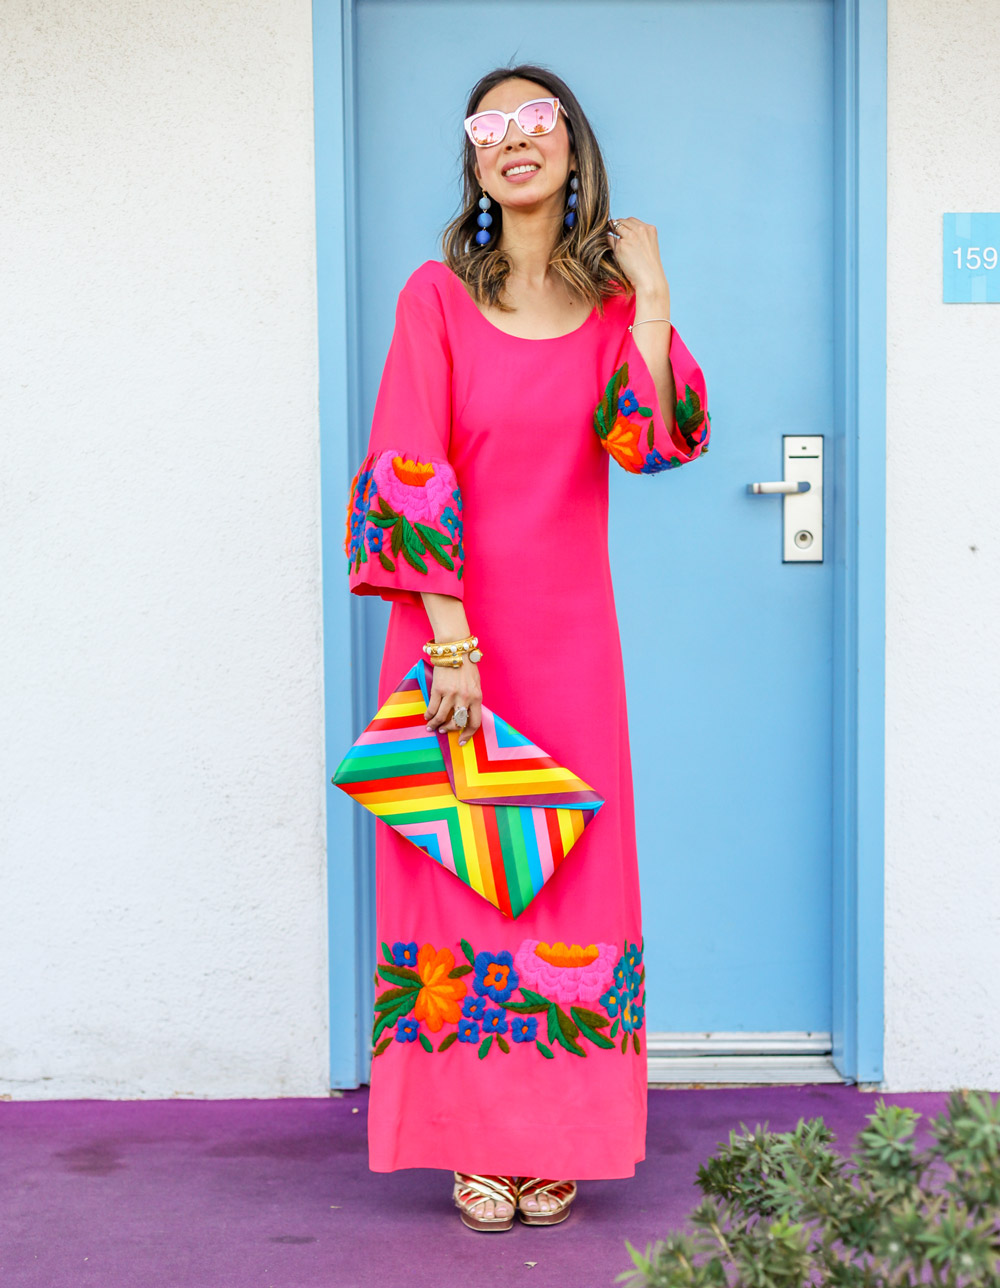 pink bell sleeve embroidered dress and rainbow clutch in palm springs california